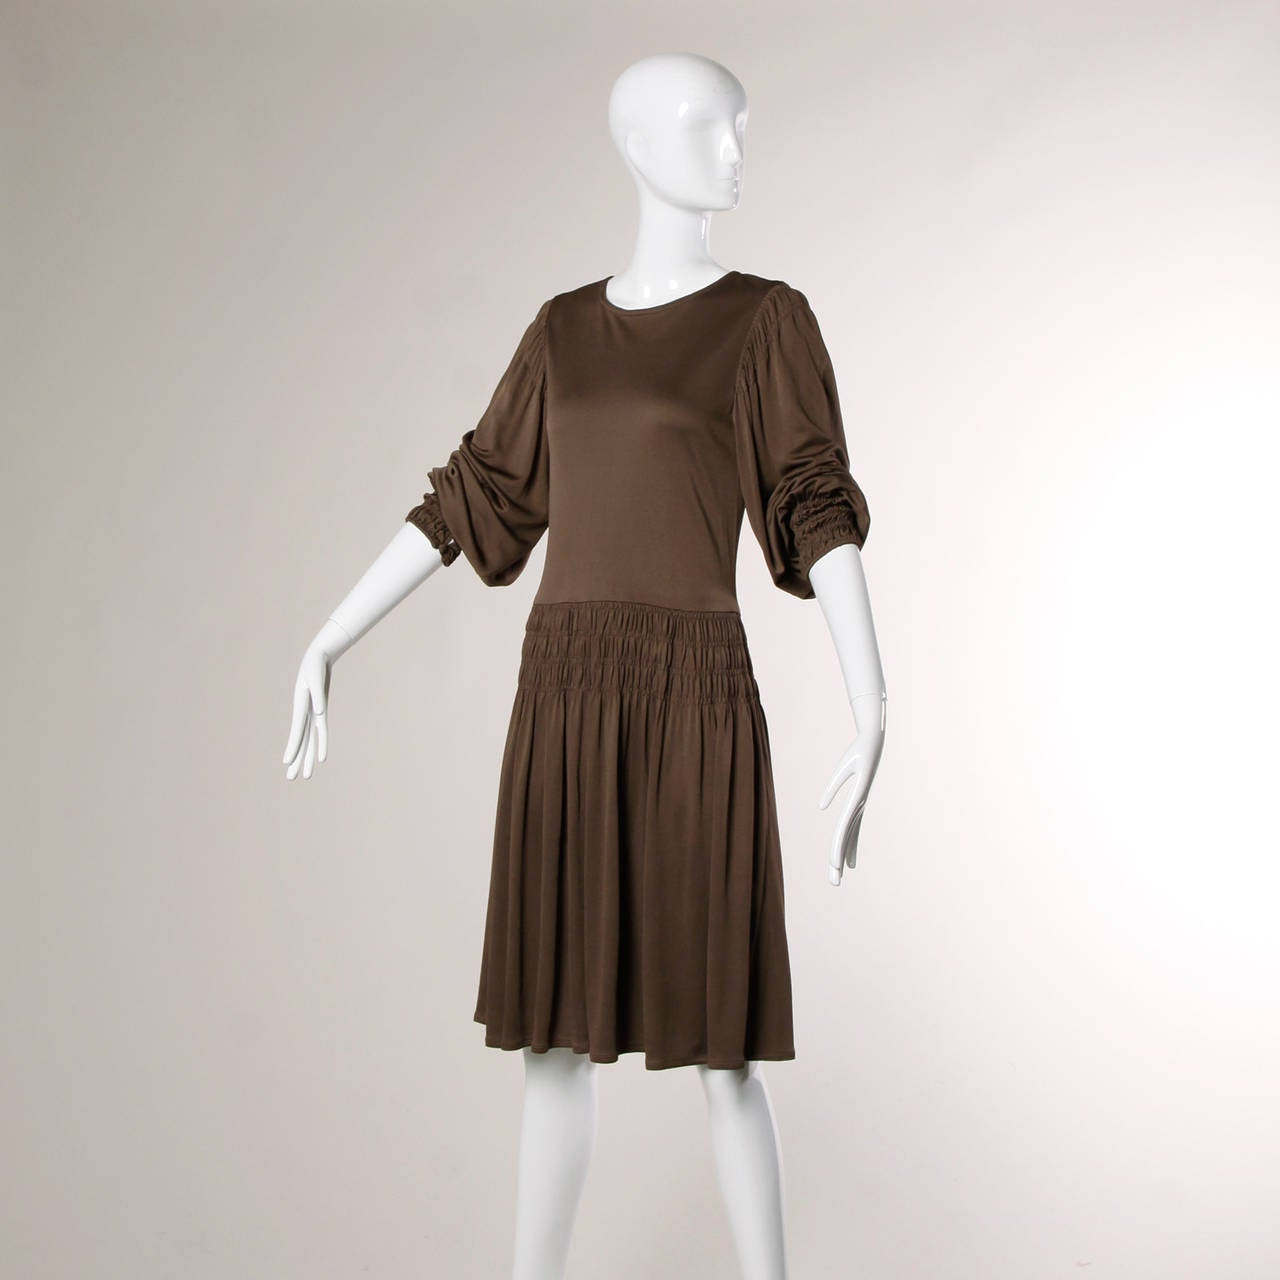 Bill Blass for Saks Fifth Avenue Ruched Brown Jersey Knit Dress In Excellent Condition For Sale In Sparks, NV